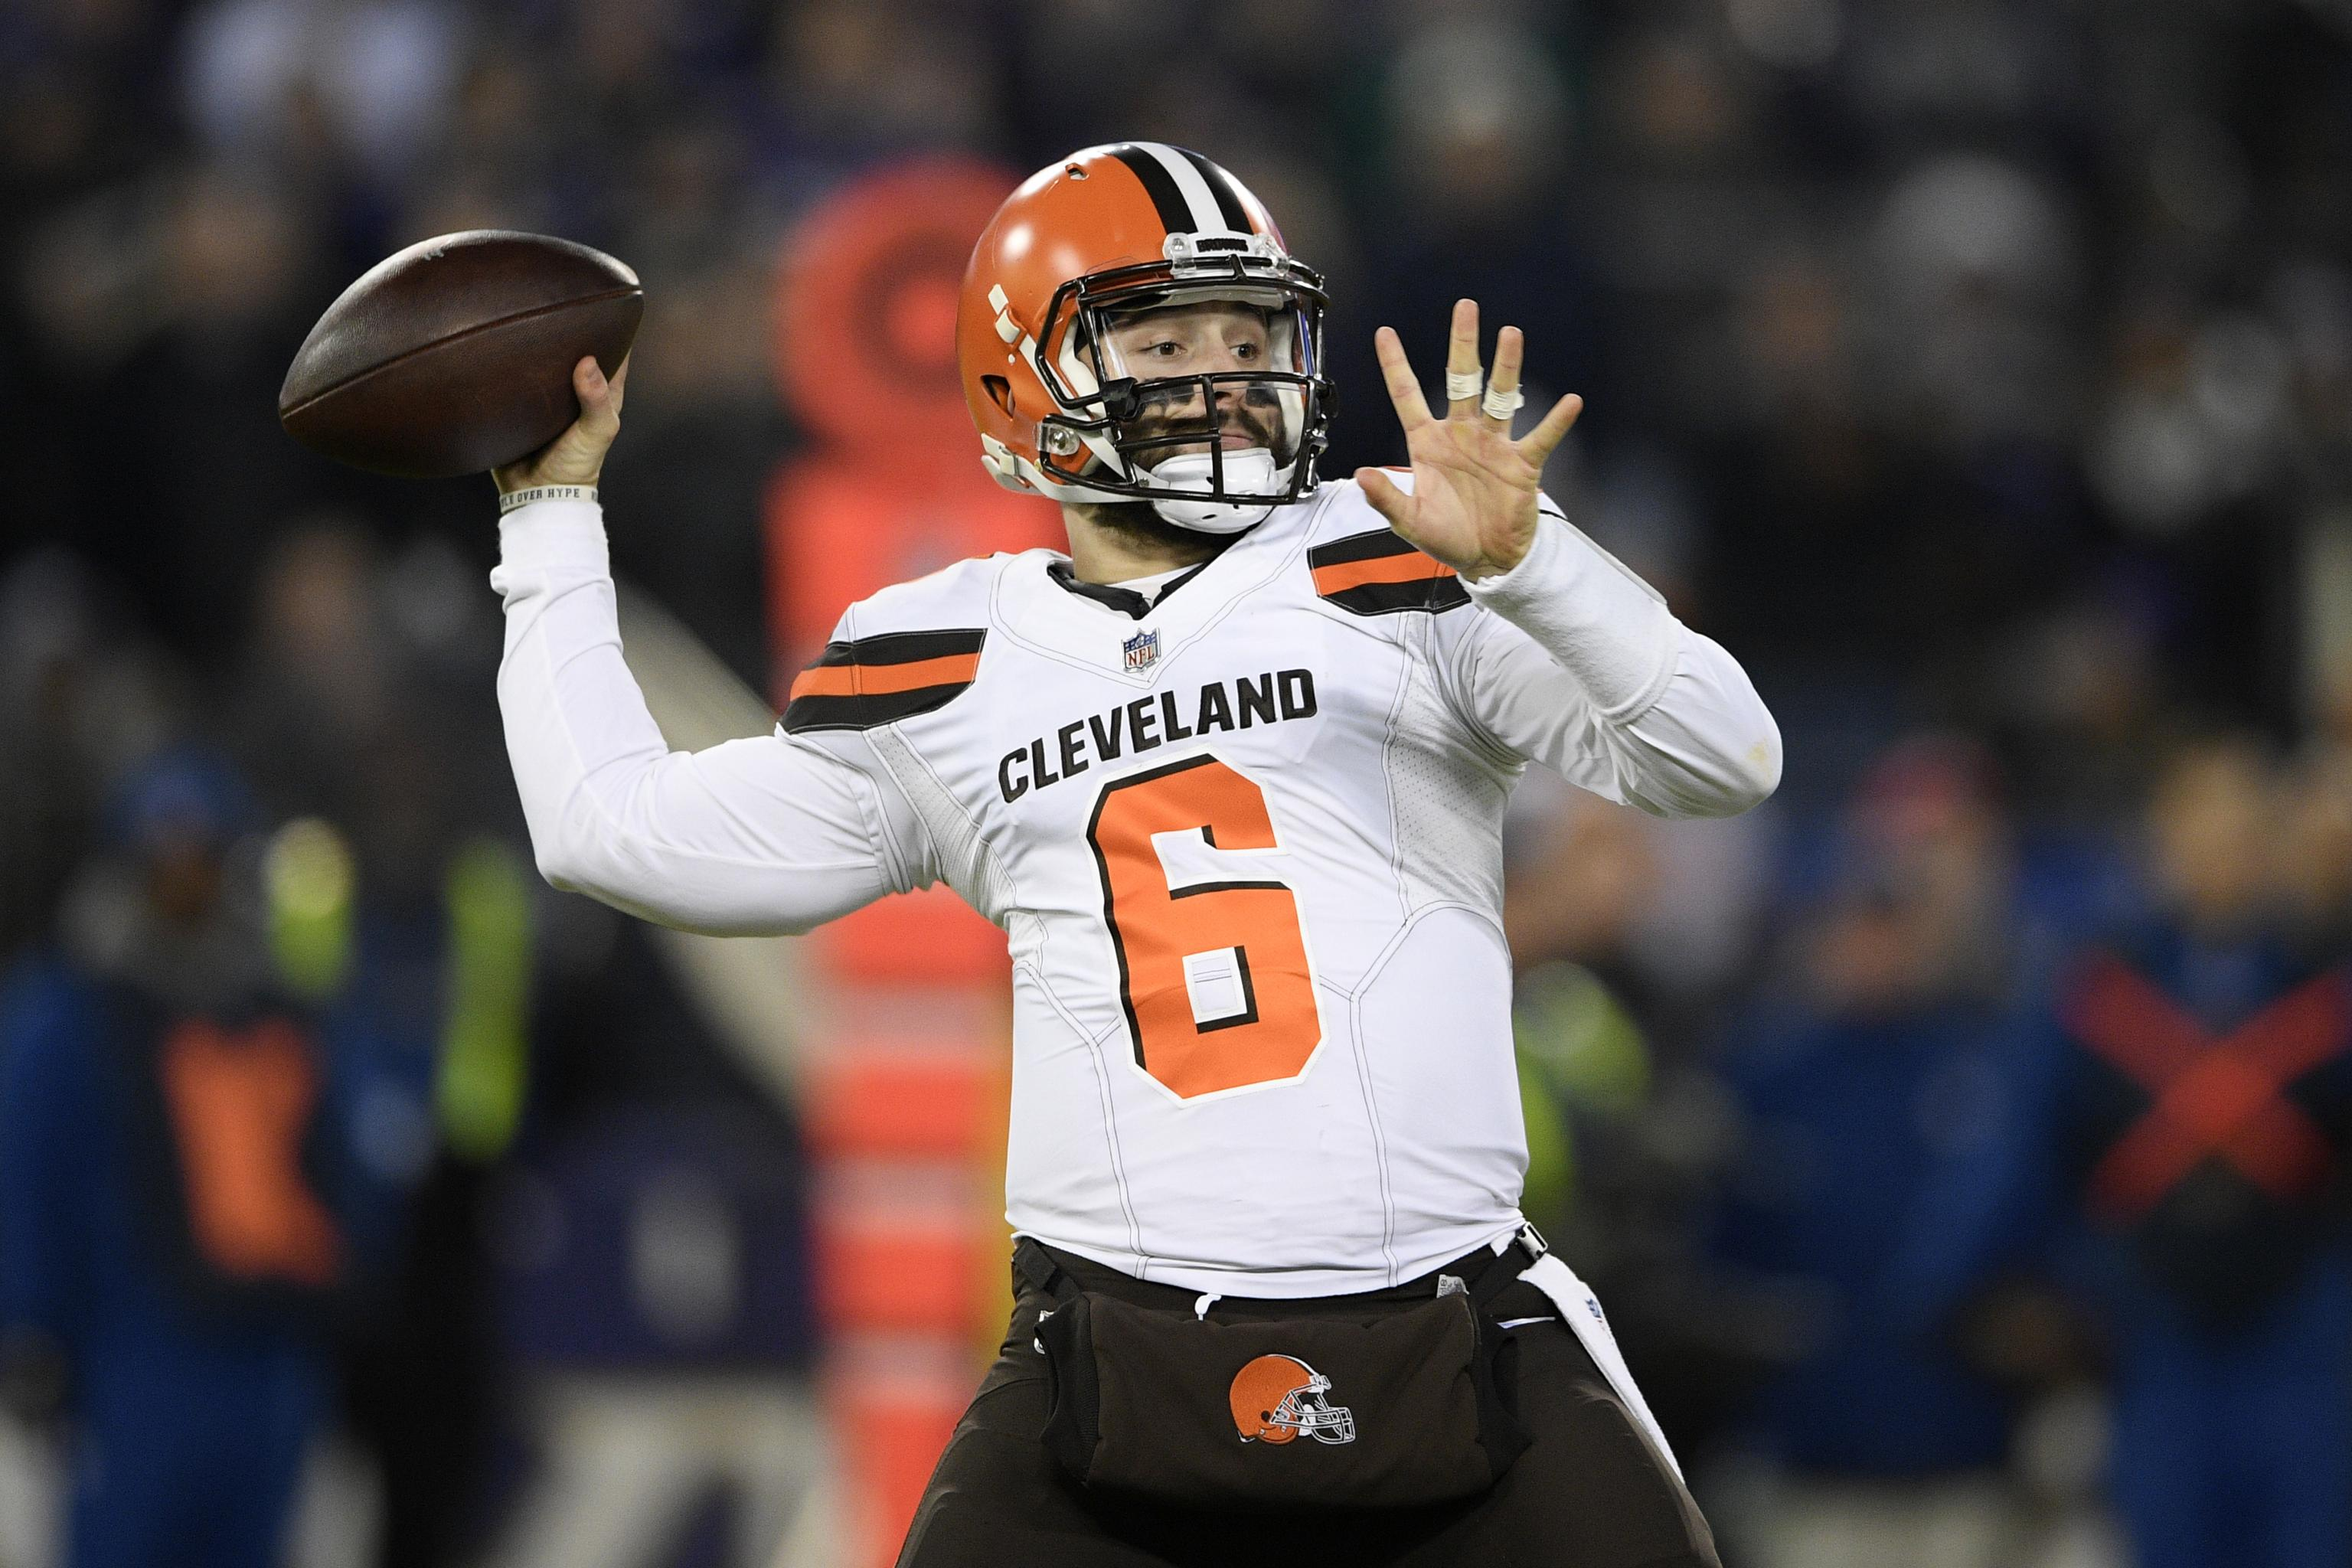 206d00b3 2019 NFL Preseason Schedule Released: Opponents, Dates, Times and ...